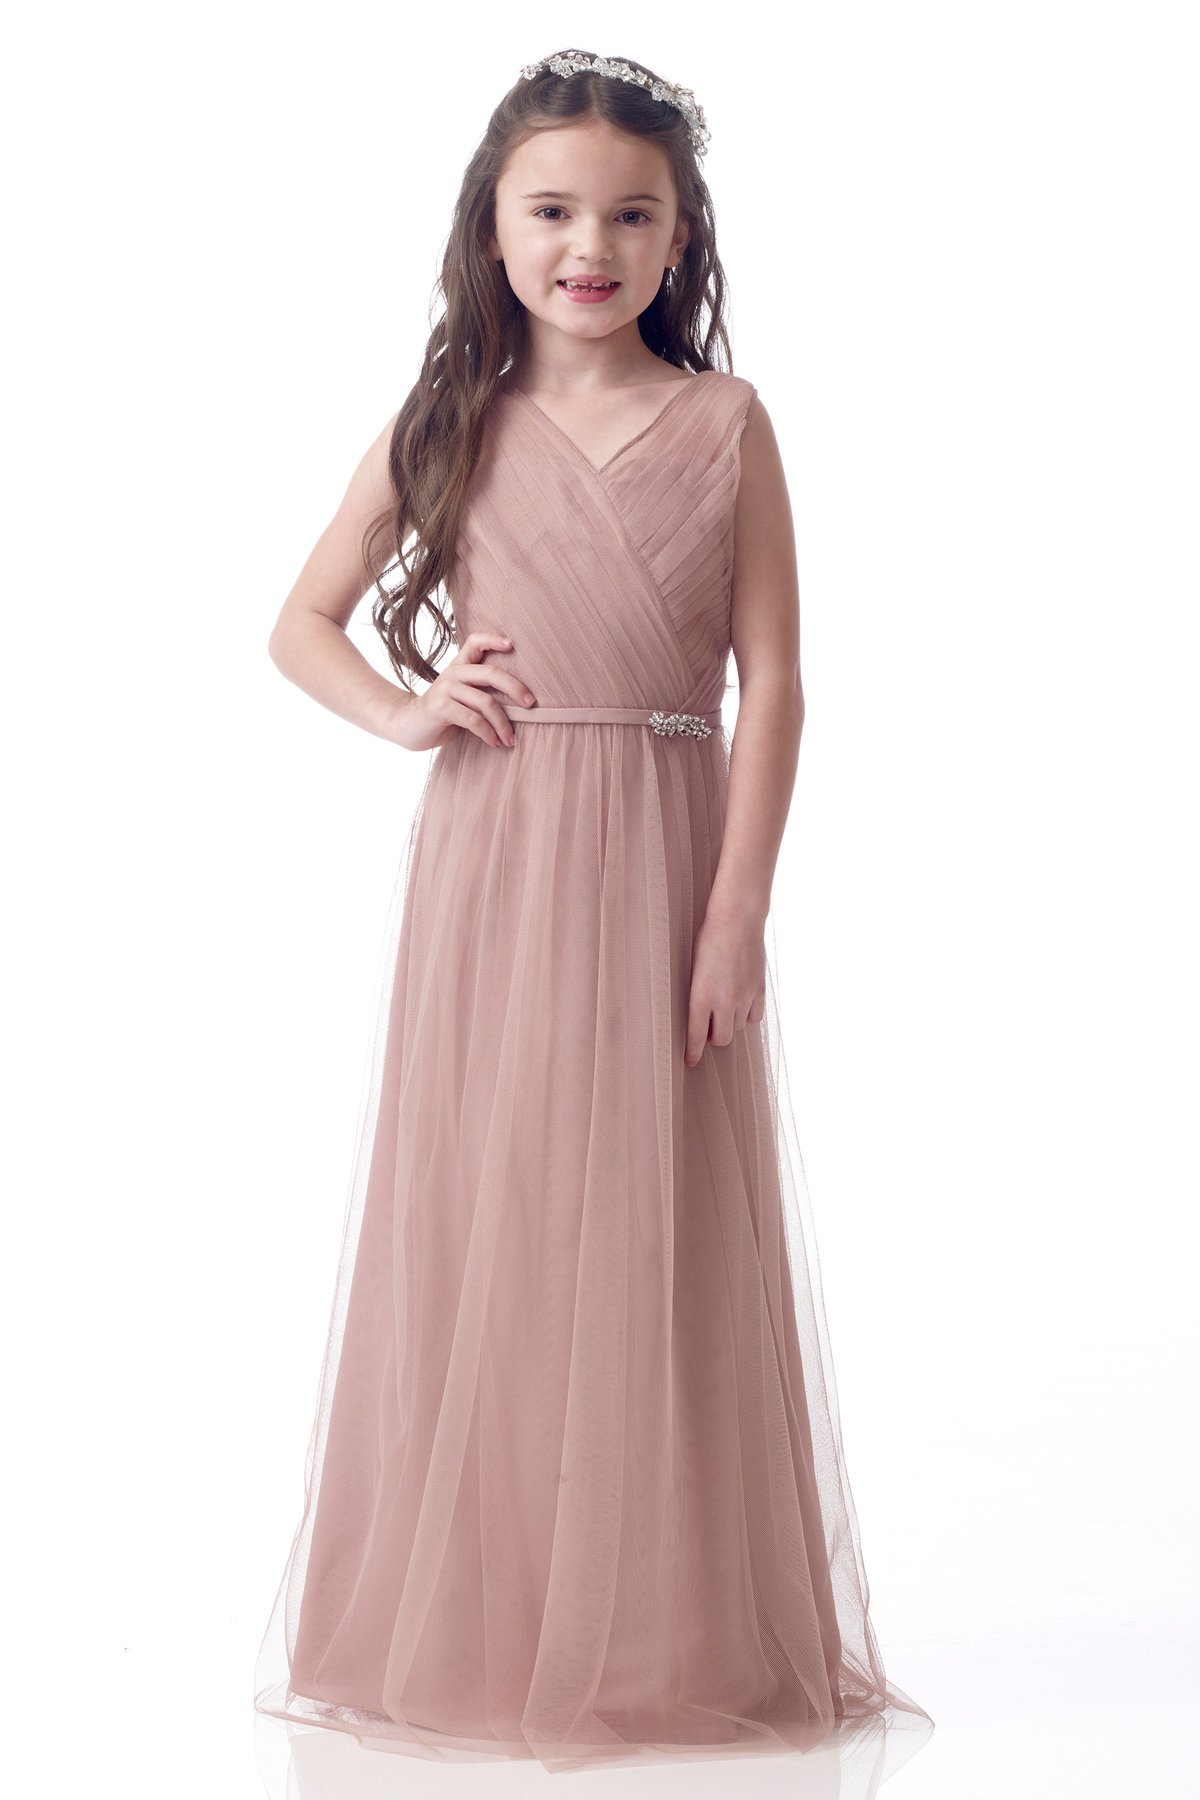 Adorable junior bridesmaid dresses from alexia designs find your jr56 ombrellifo Choice Image